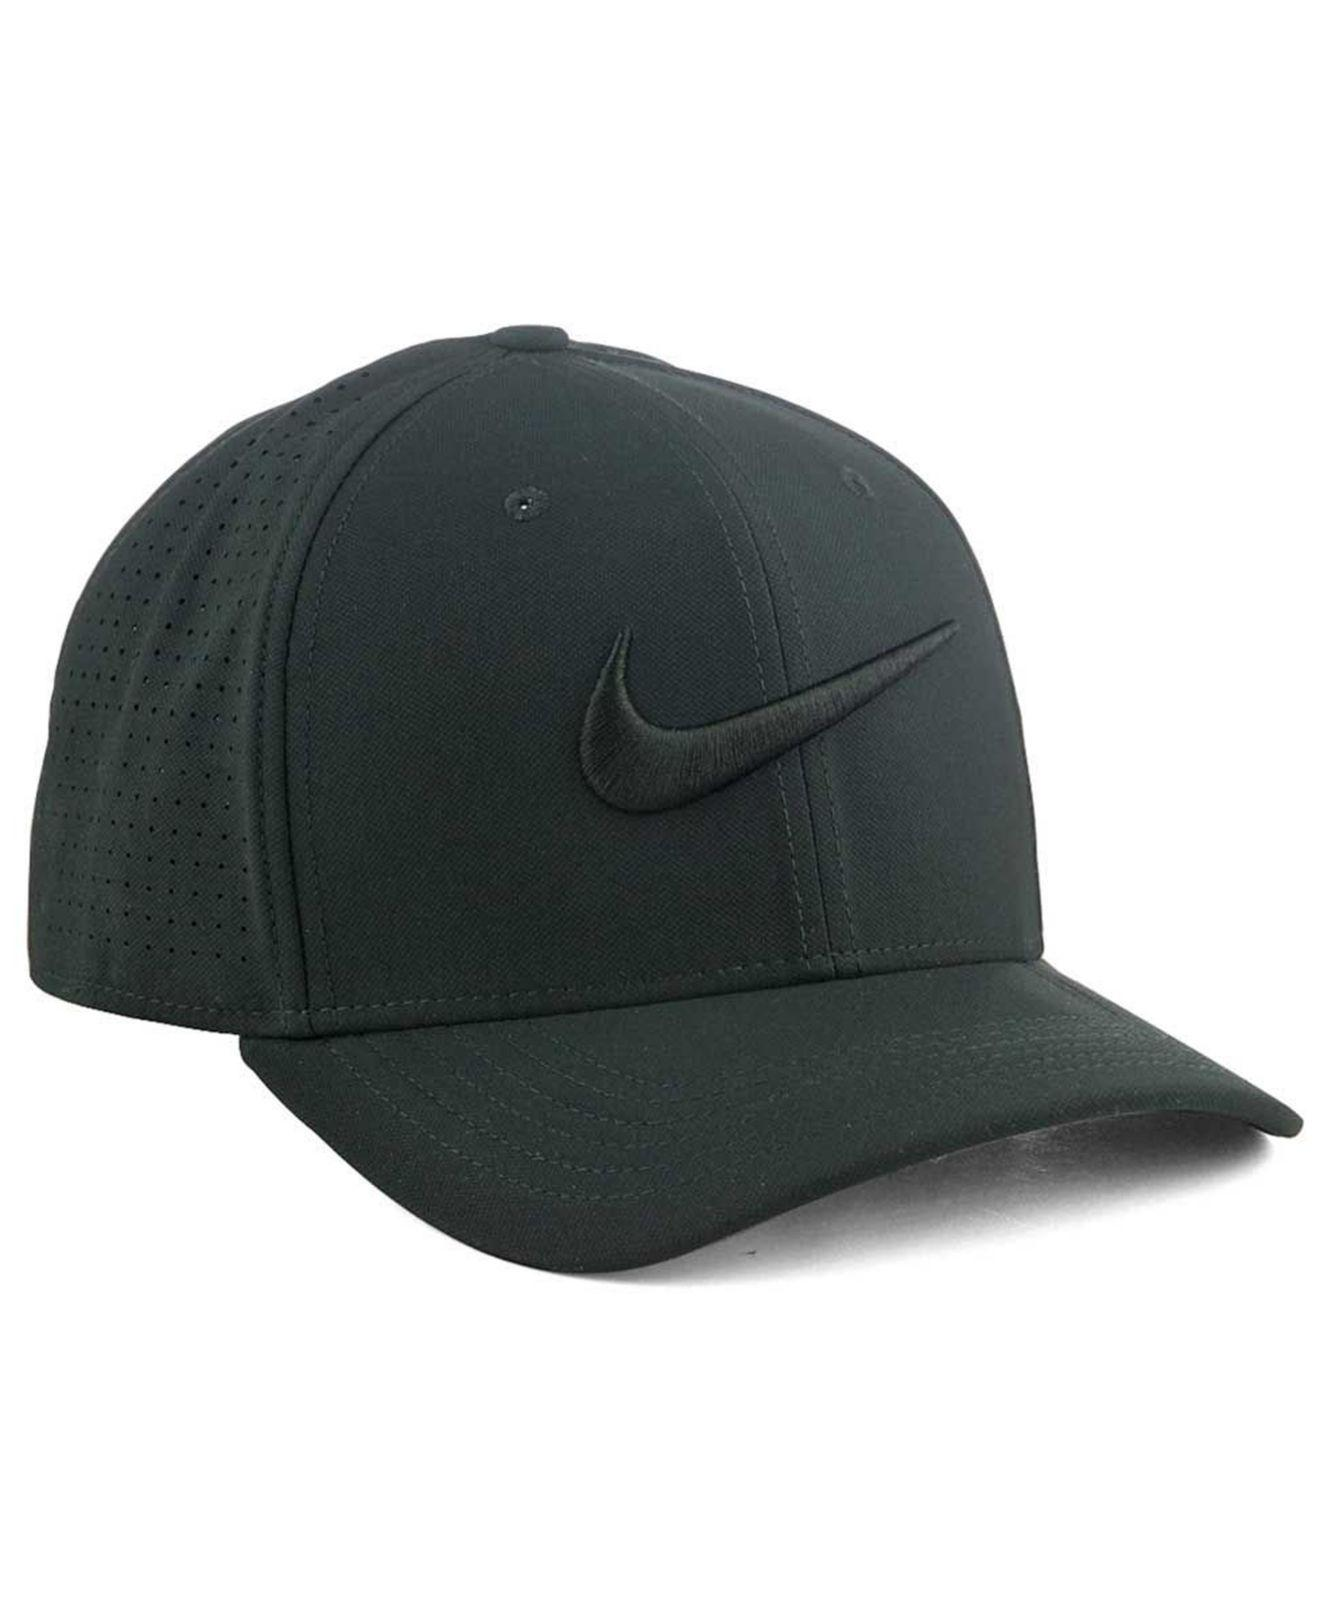 new product ff5a2 eabff ... store lyst nike vapor flex ii cap in black for men fcabf c9b0e ...